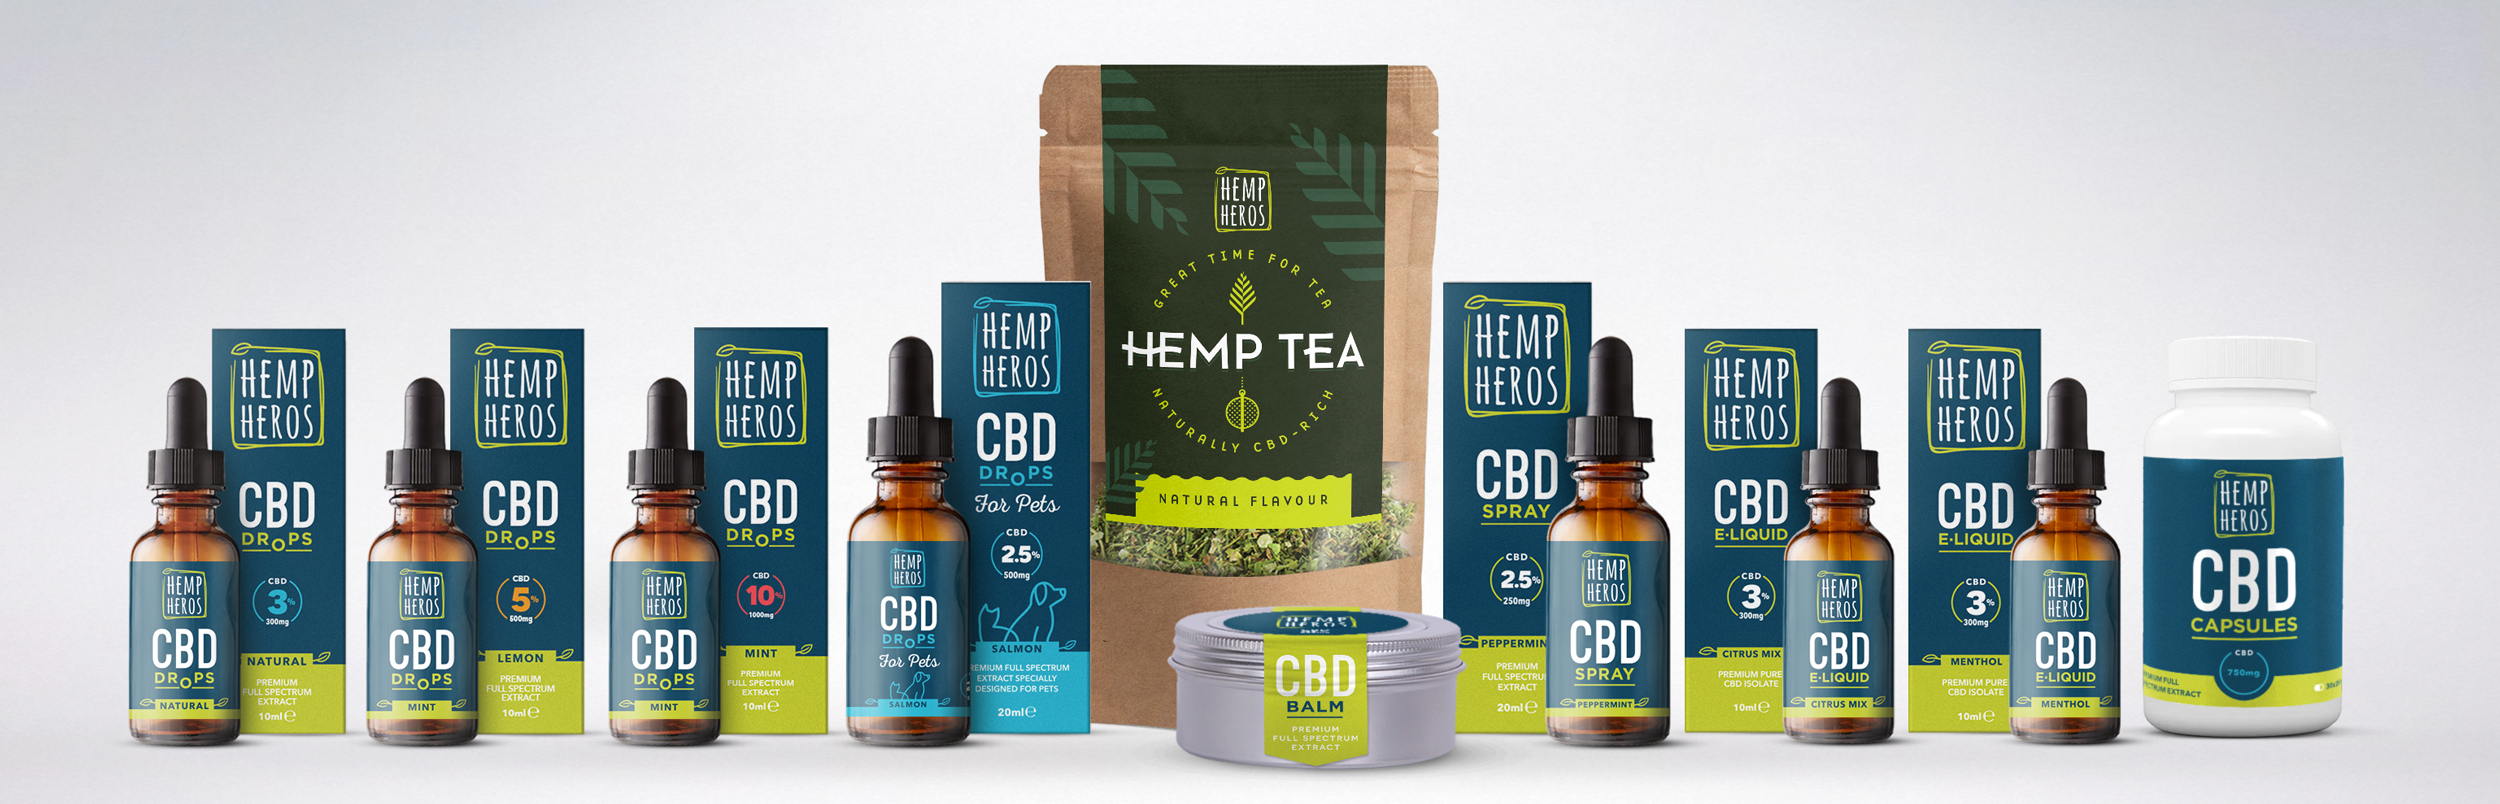 Hemp-Heros-Products lineup